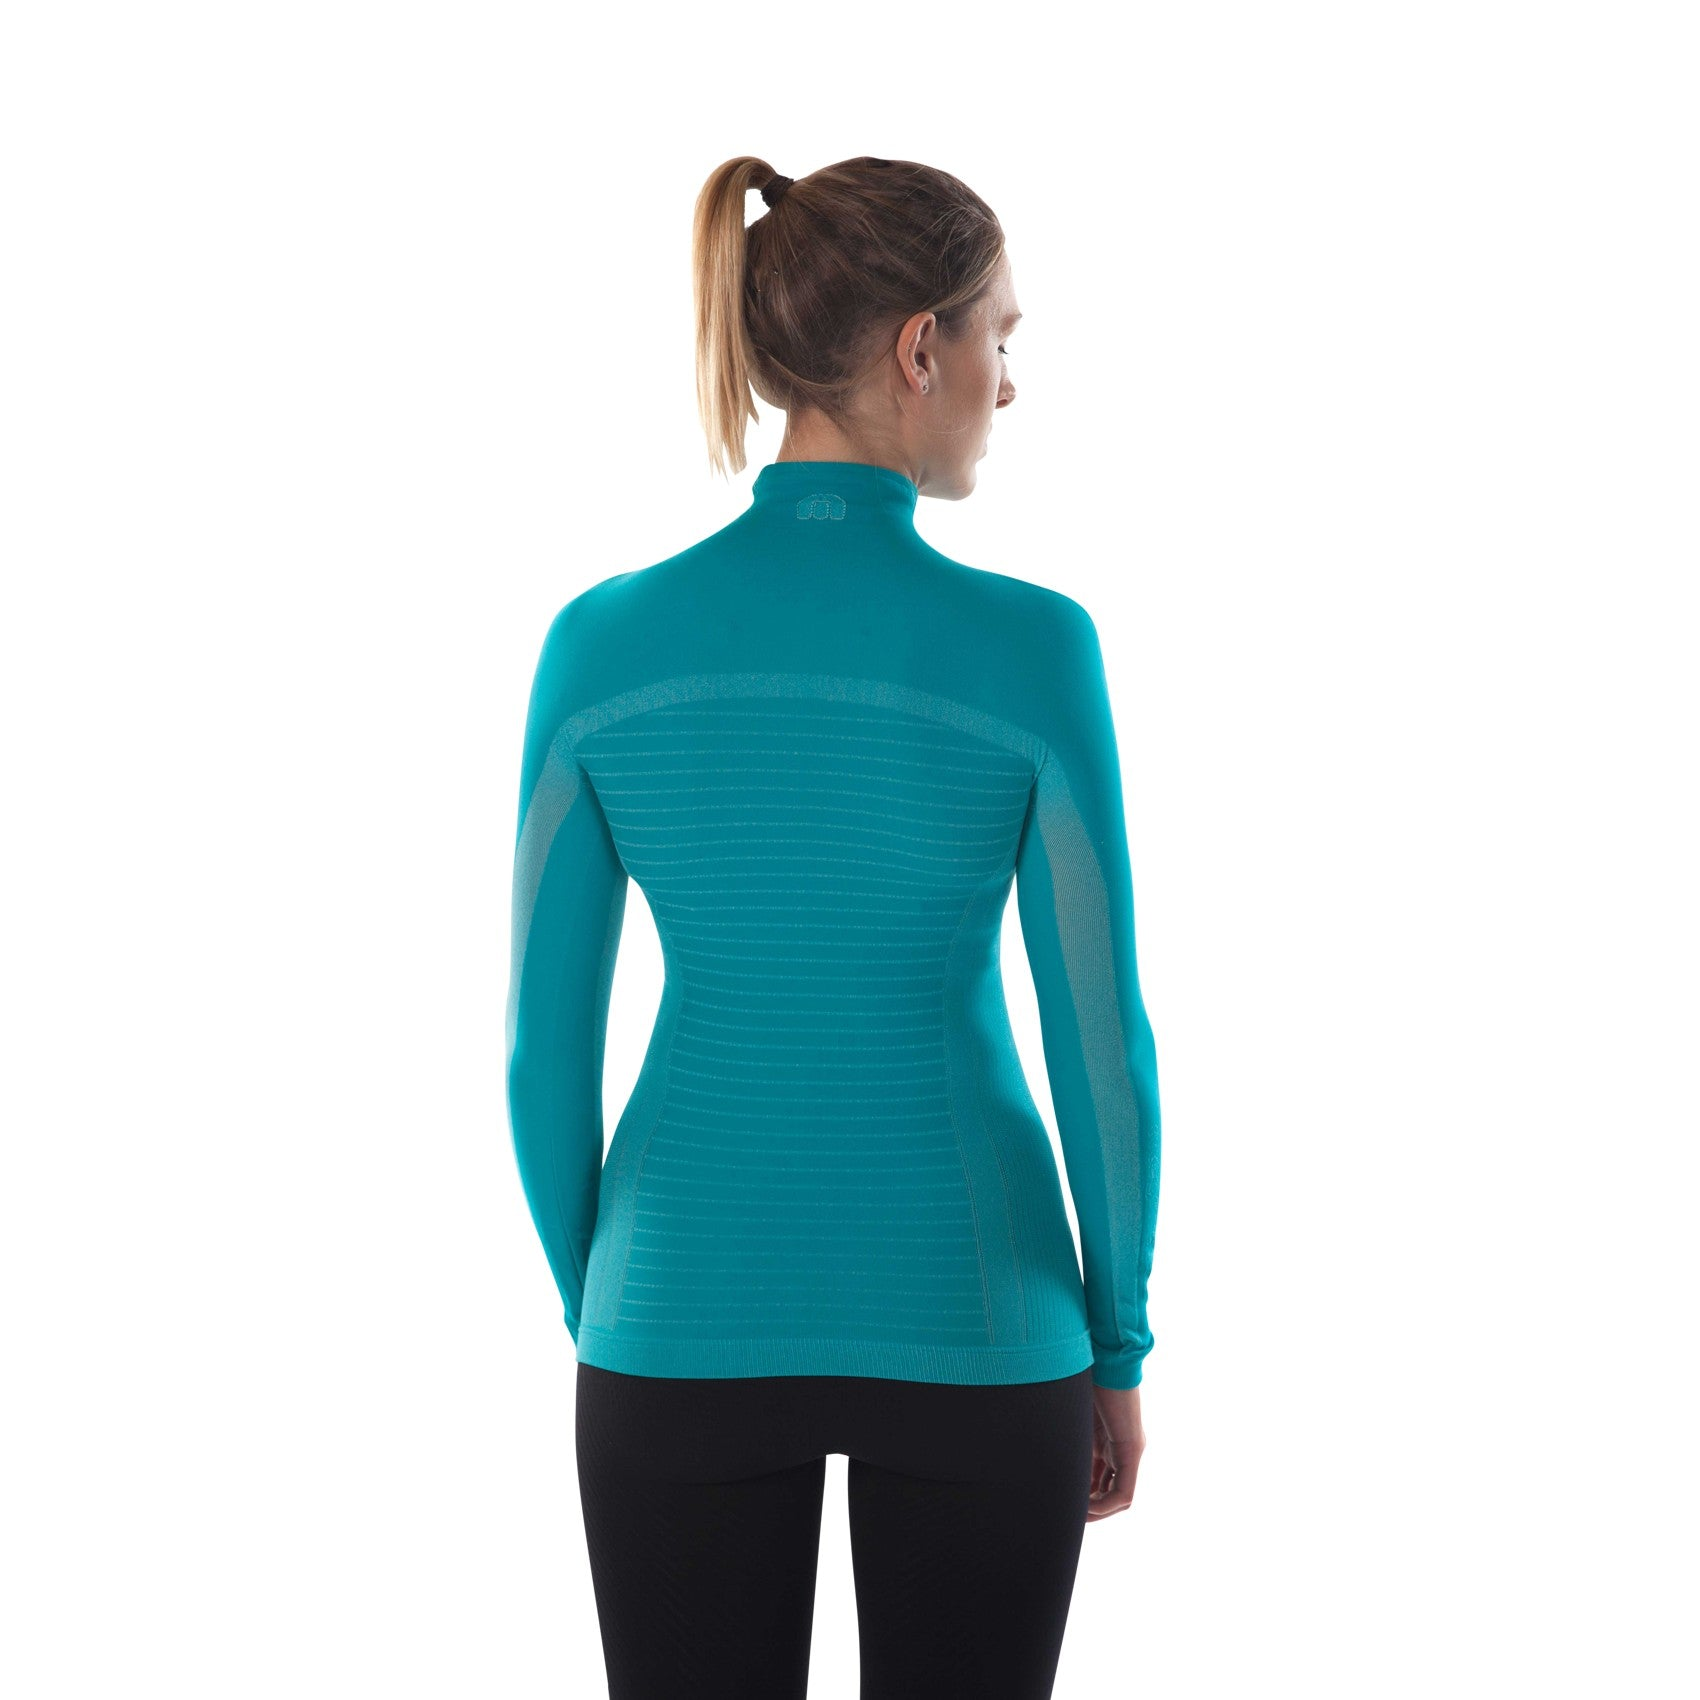 Women's DRYNAMO Winter High Neck Base Layer